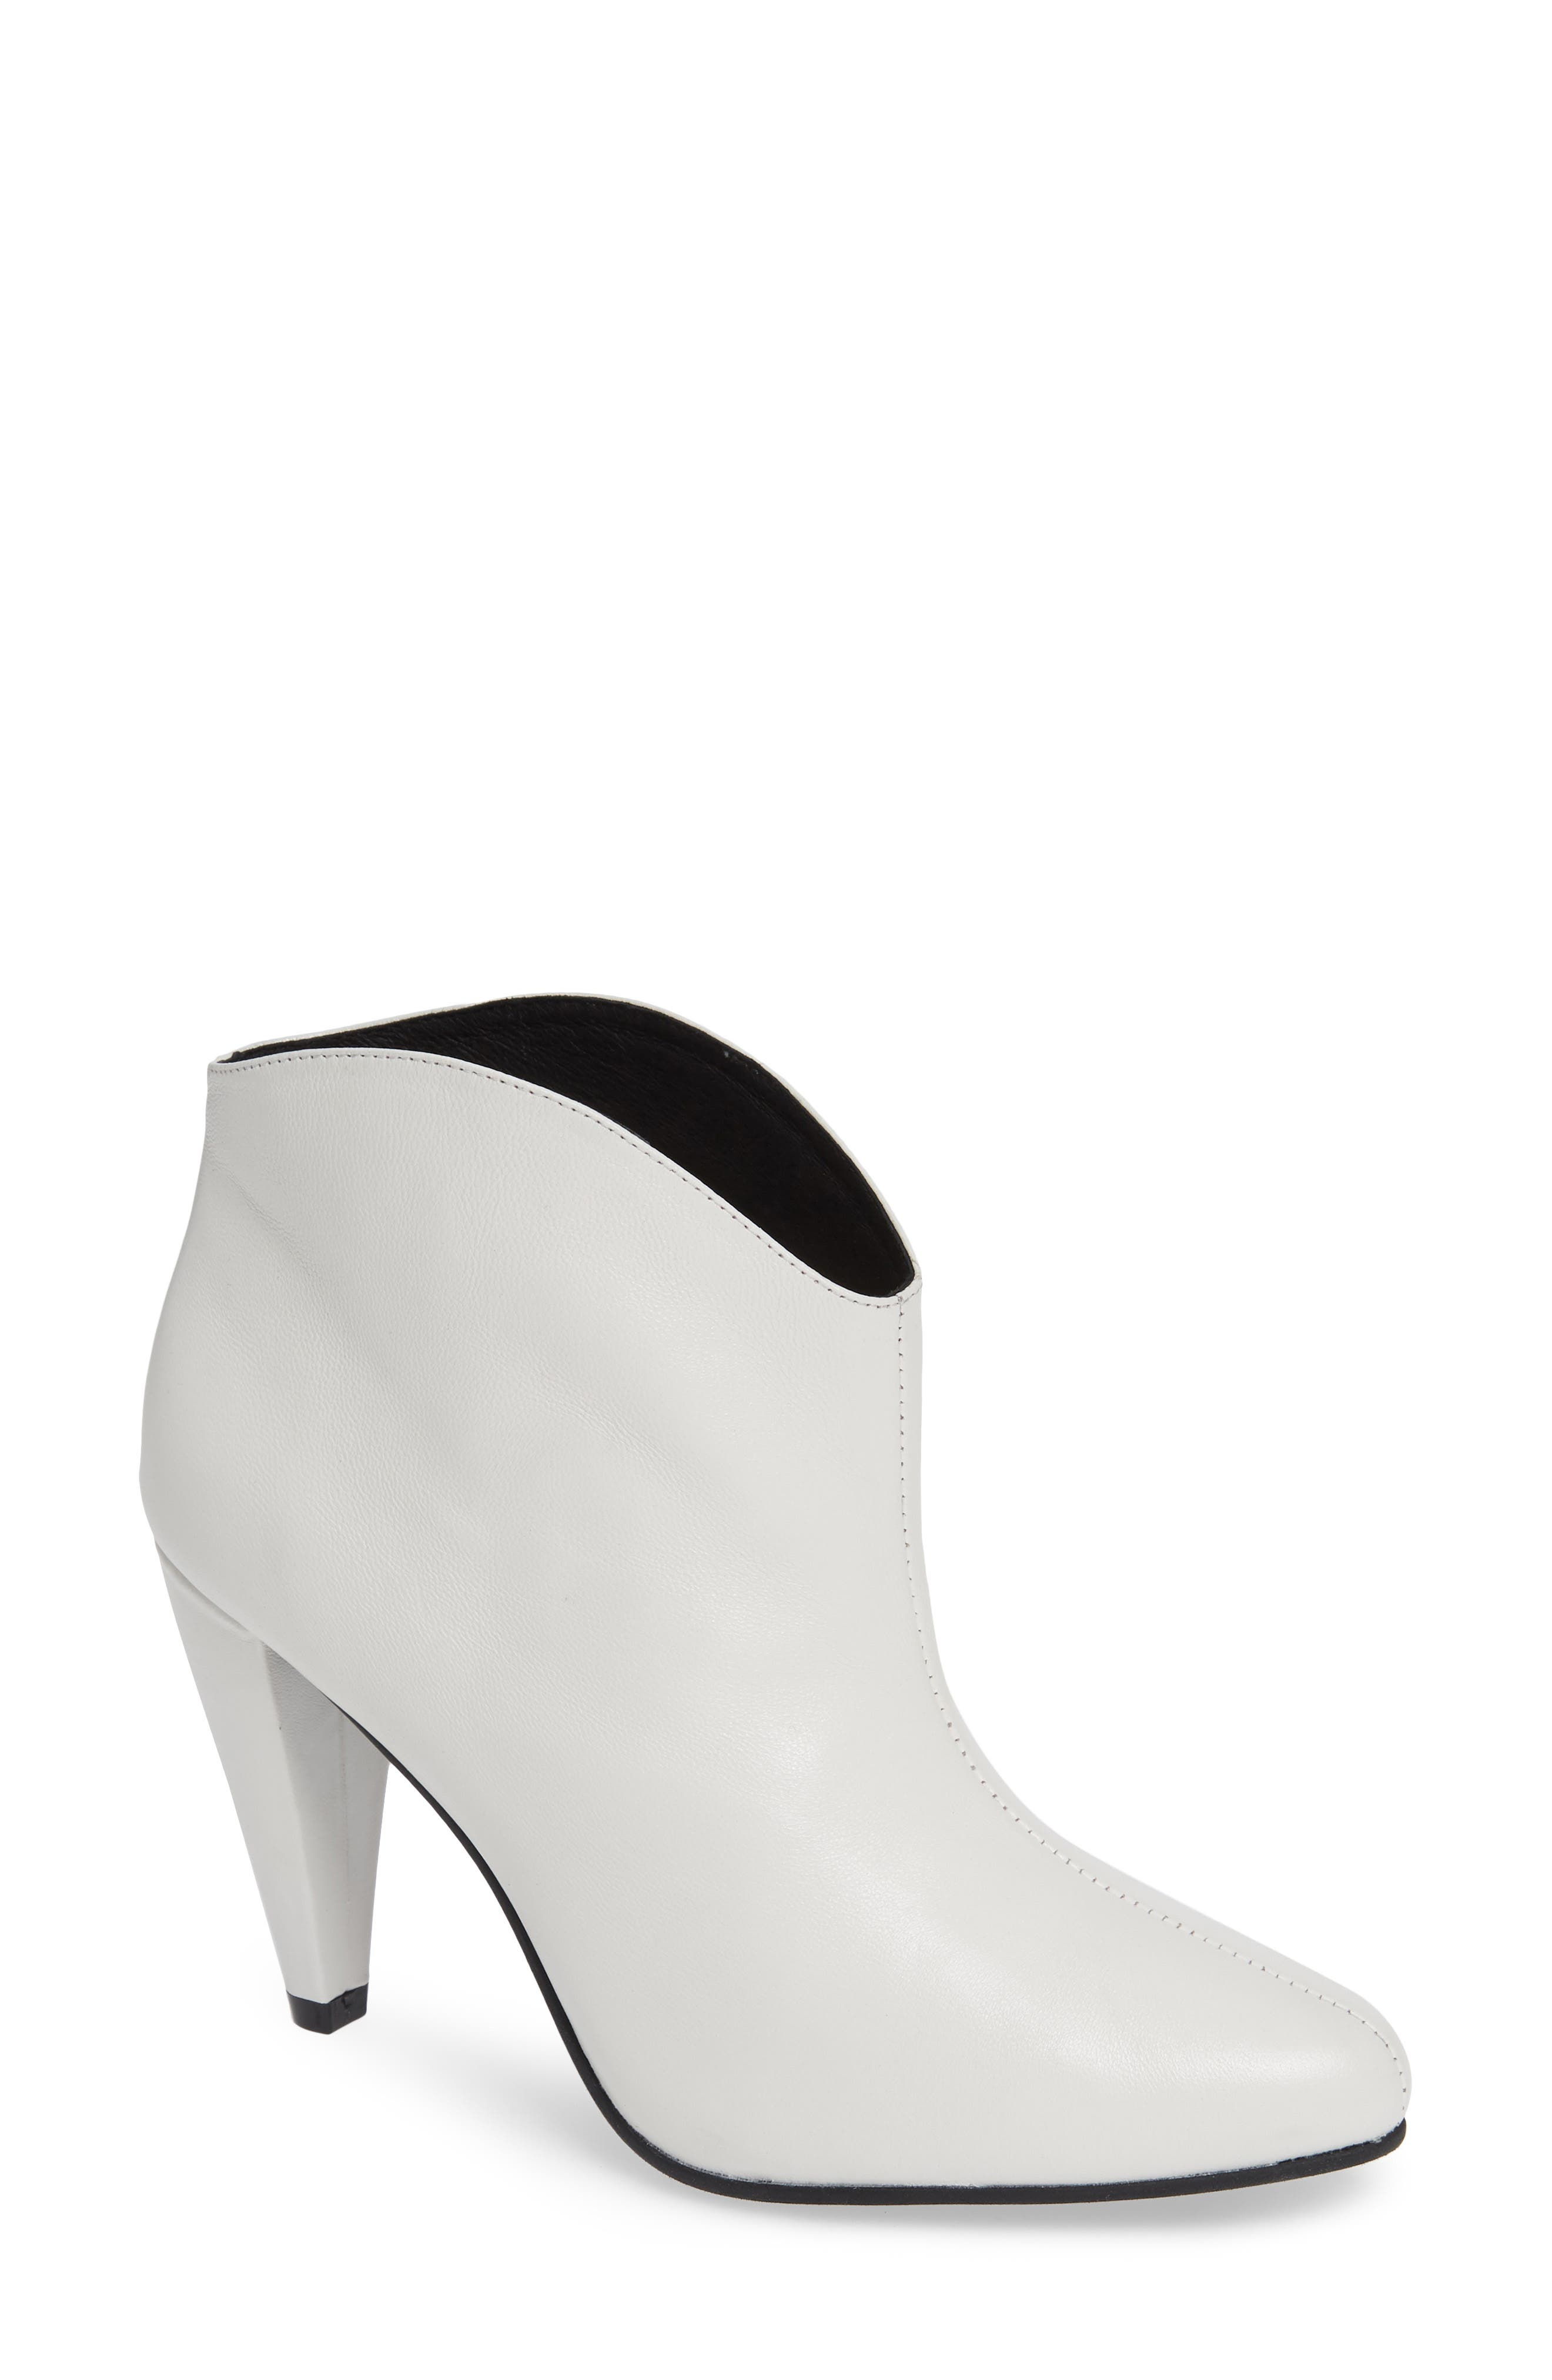 Jeffrey Campbell Furiosa Bootie, White